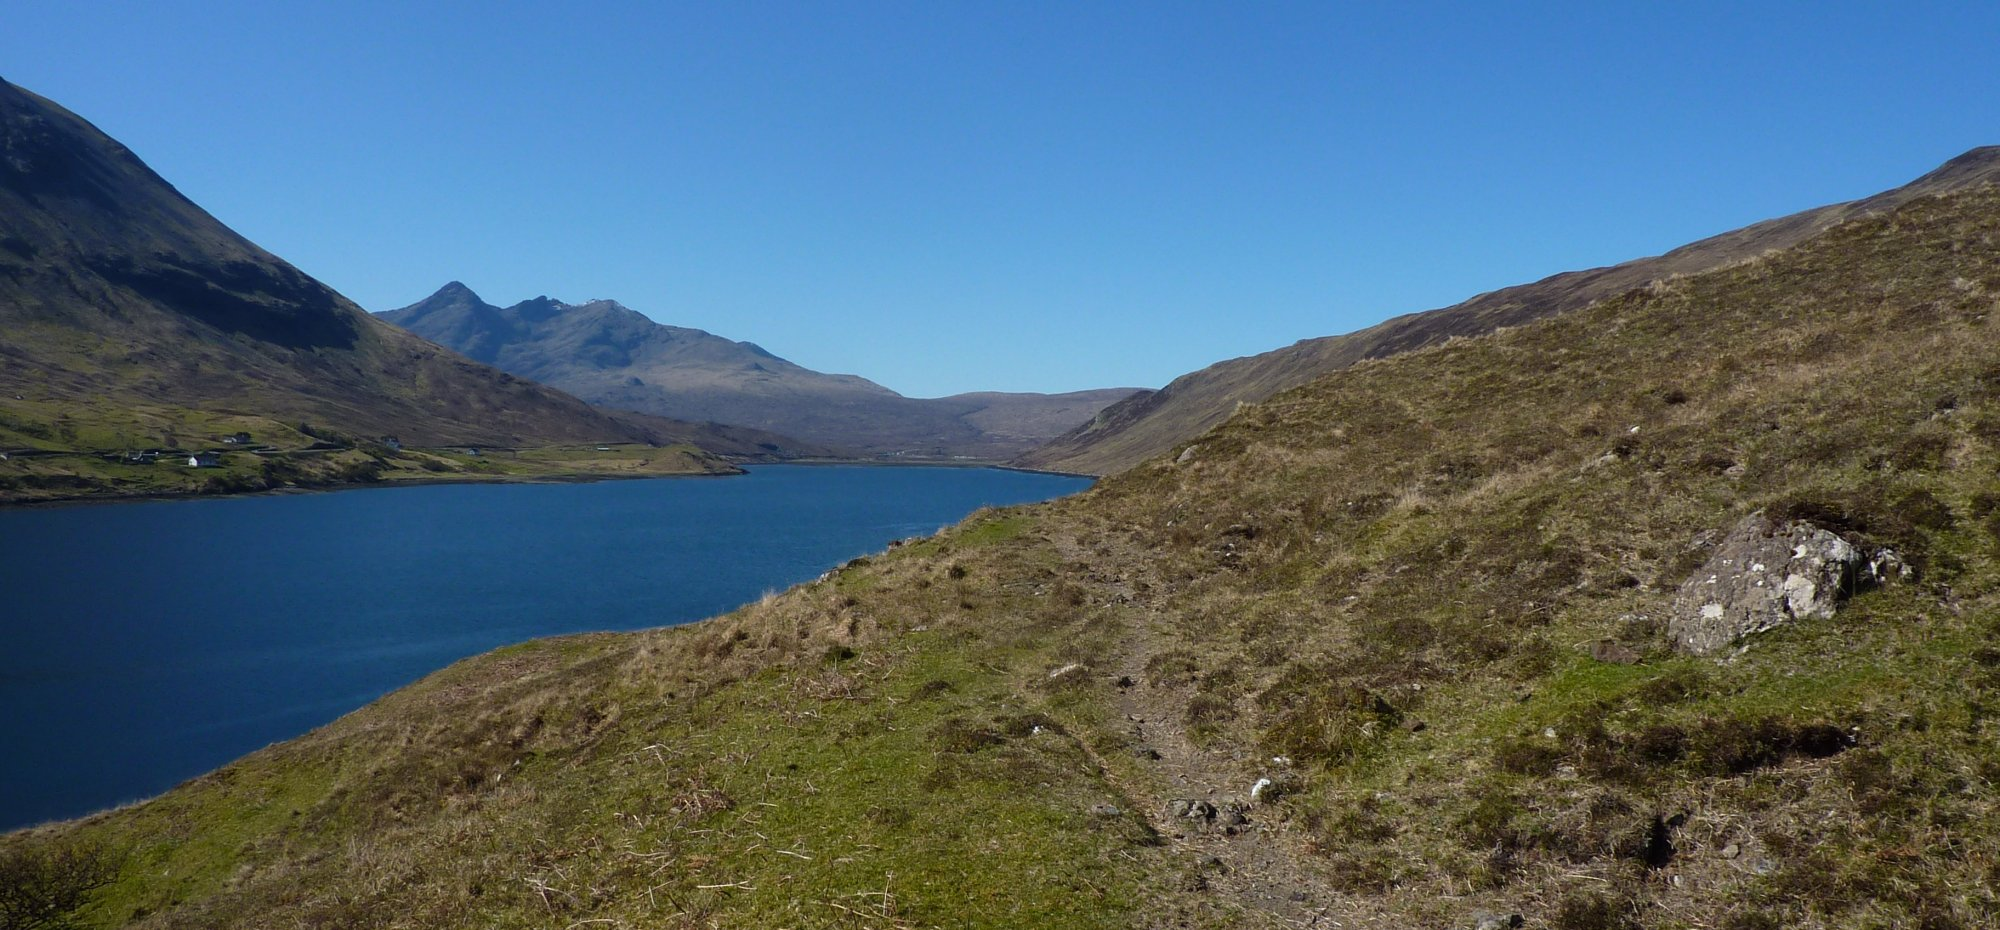 Glamaig to the left and the Cuillins ahead, some of my favourite walking of the journey so far